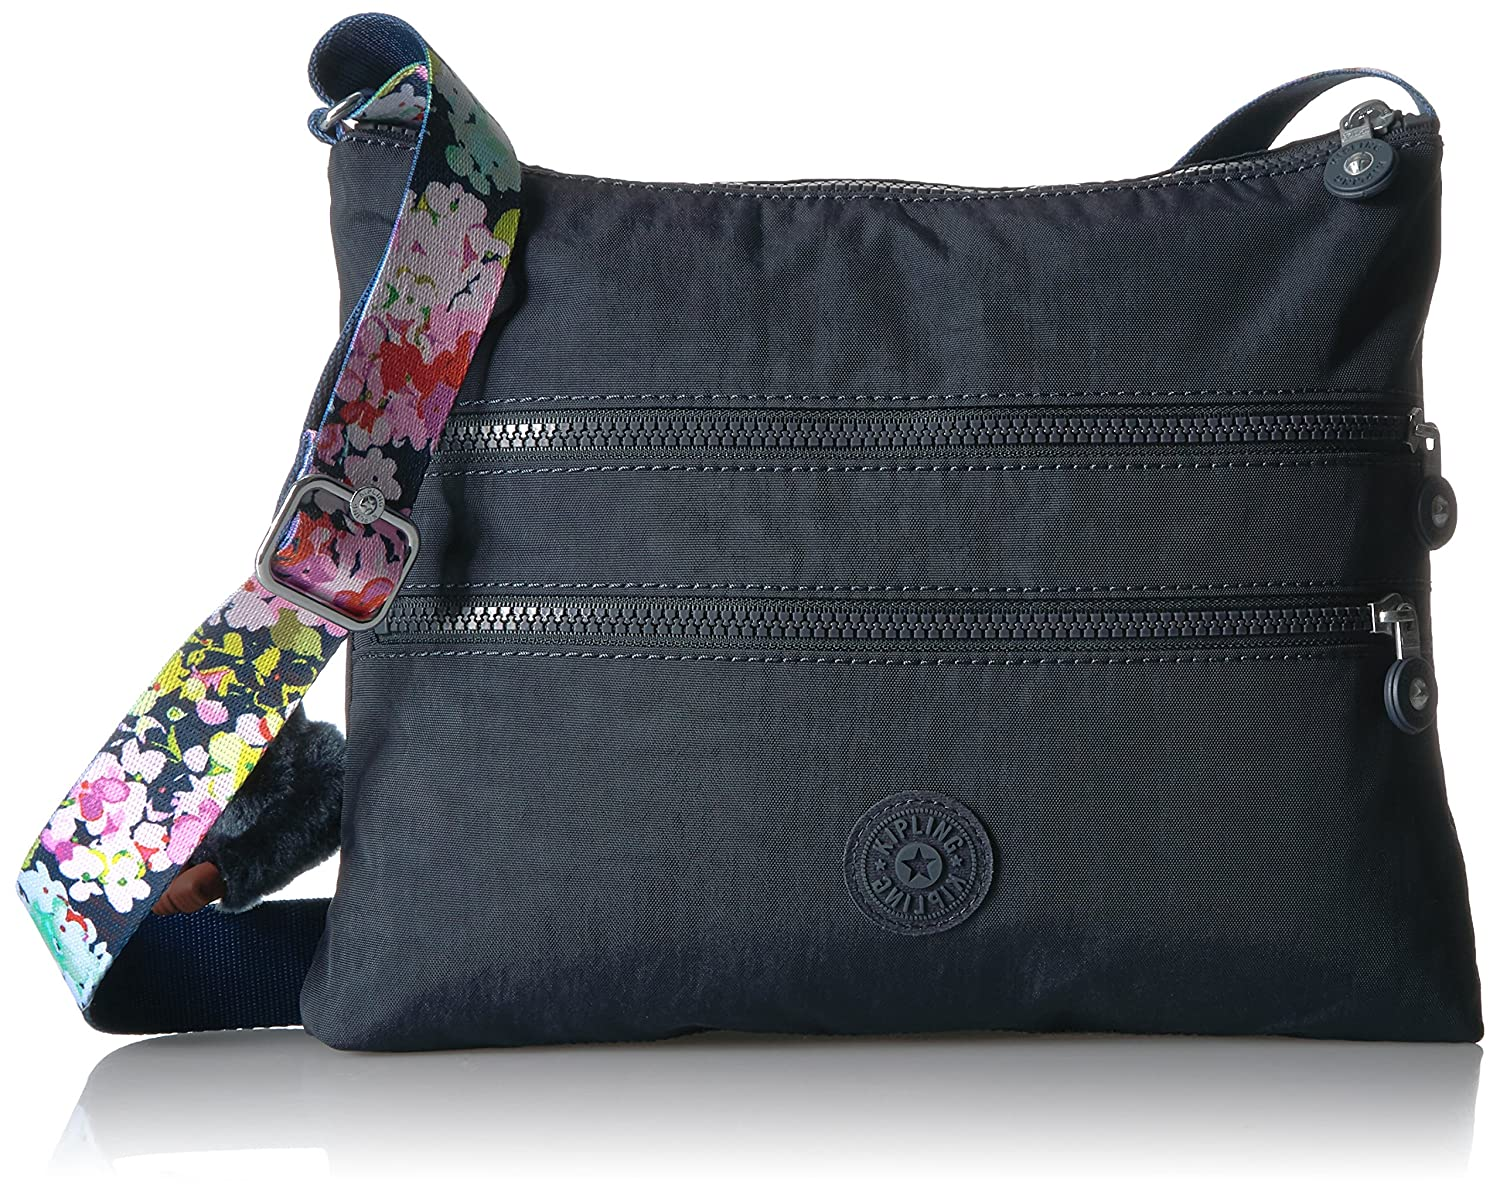 Kipling Alvar Solid Crossbody Bag With A Floral Printed Strap True Fossil Lucy Blue Handbags